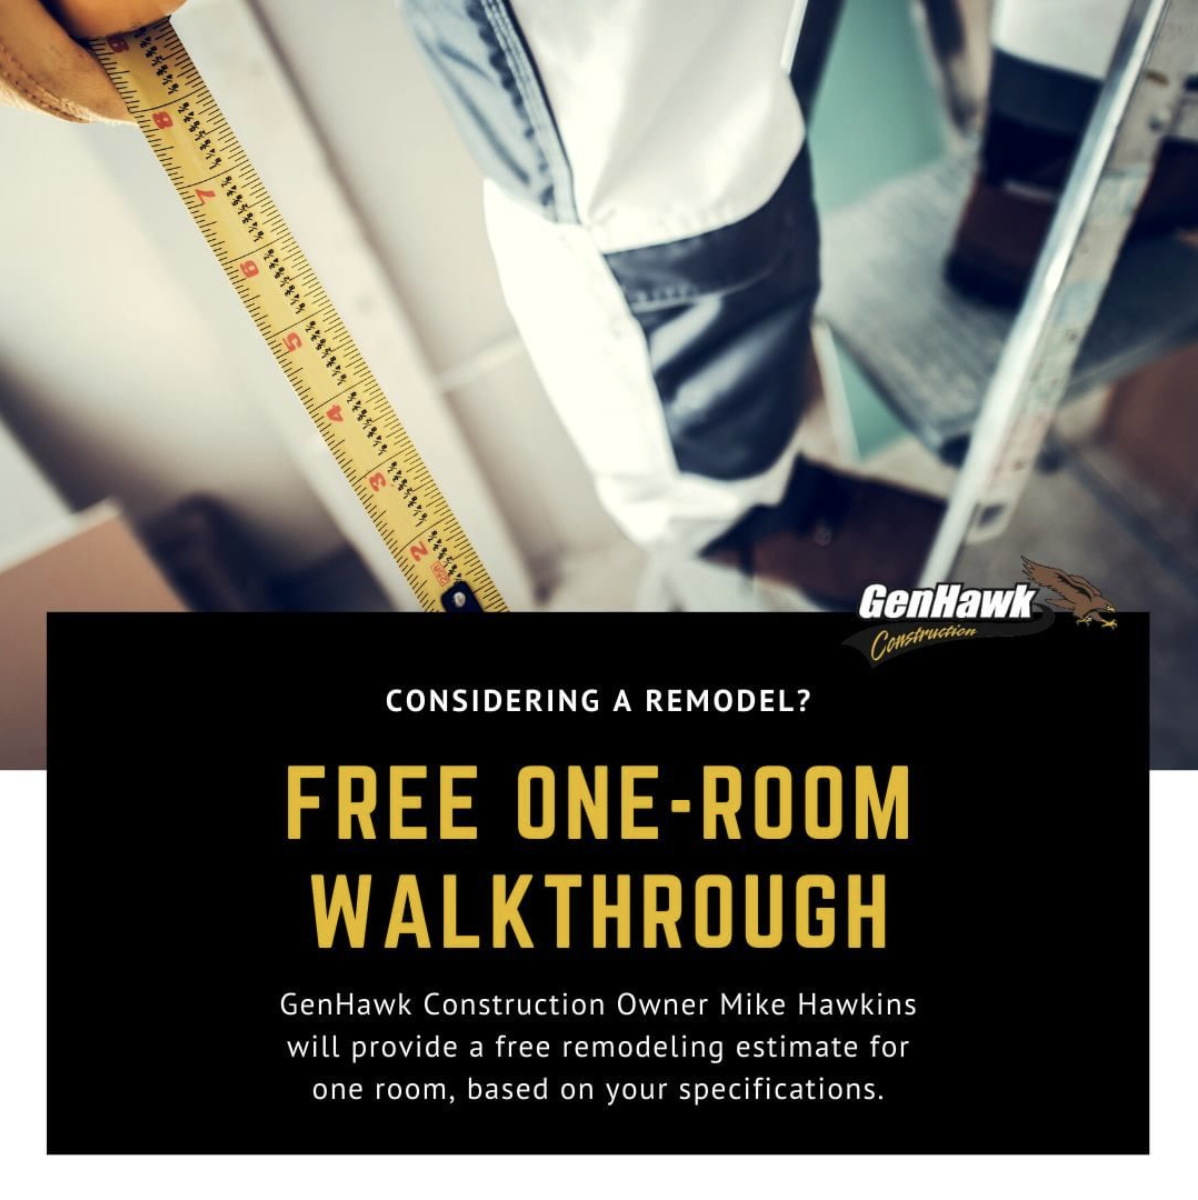 Free One-Room Remodeling Walkthrough - GenHawk Construction